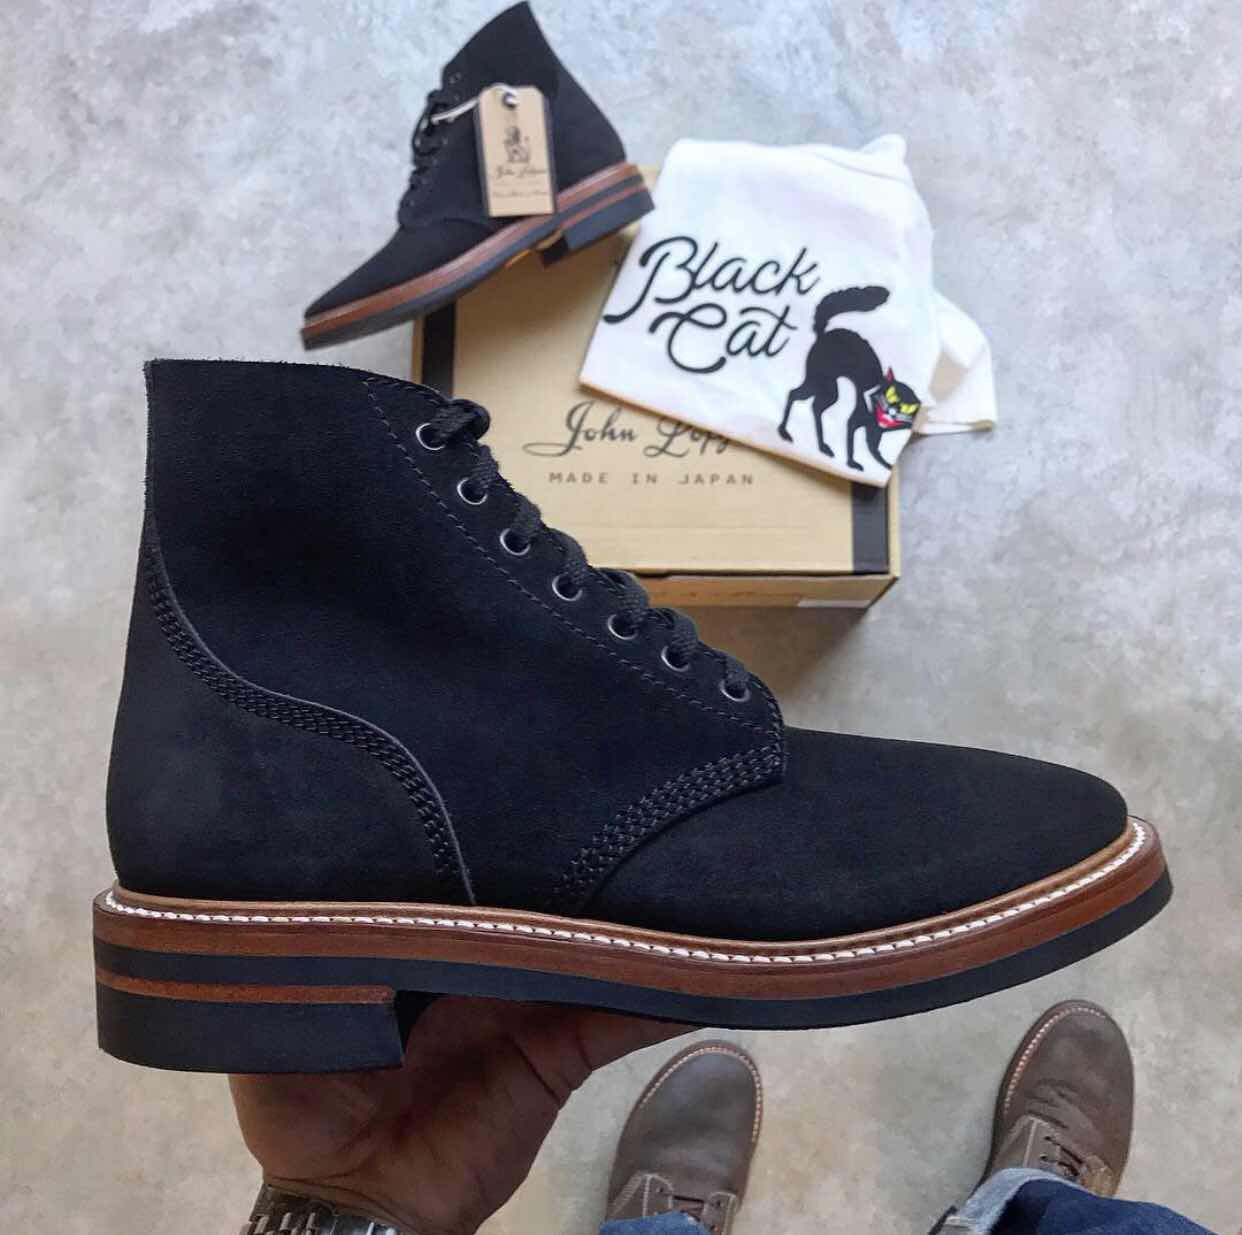 aacca90a0f0a3 Vintage Engineer Boots  BLACK CAT M-43 BOOTS